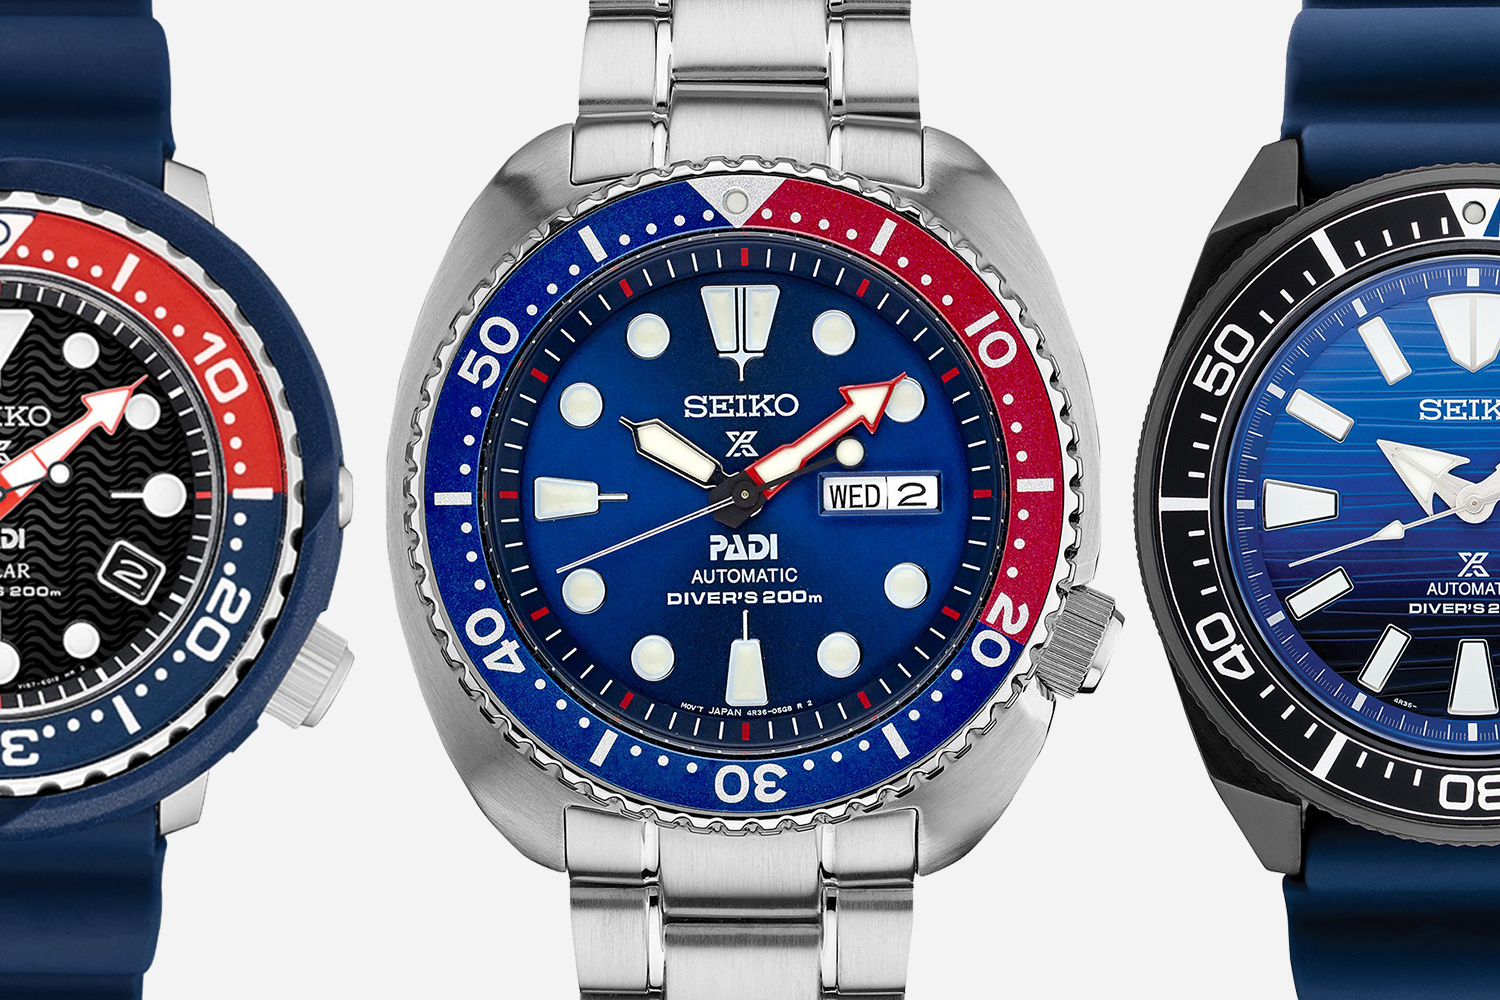 Seiko Dive Watch Sale at Macy's